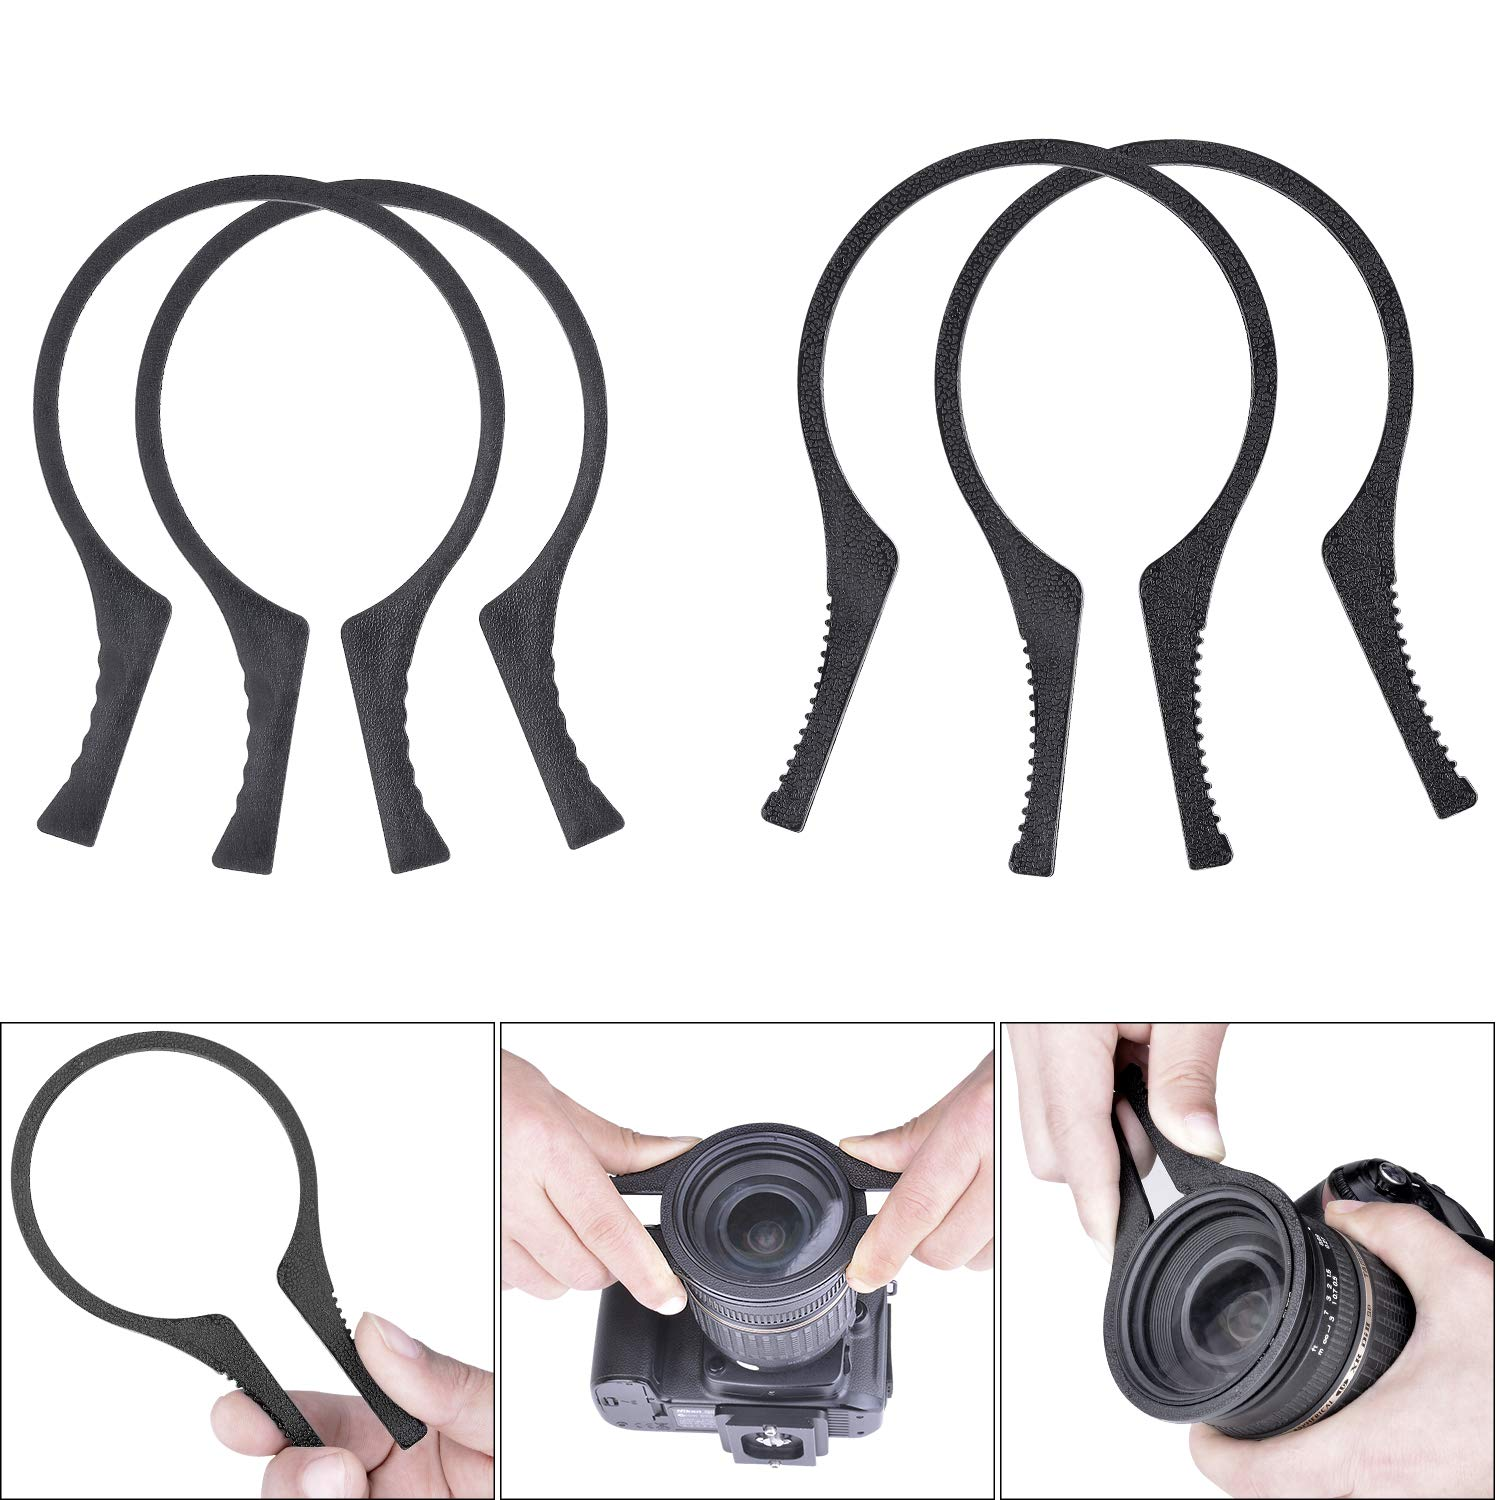 2 Packs Camera Lens Filter Wrench Kit,ABS Filter Removal Wrench Tool Set,Fit 37mm-46mm Lens Thread for Canon Nikon Sony Fujifilm Olympus Panasonic and Other Camera